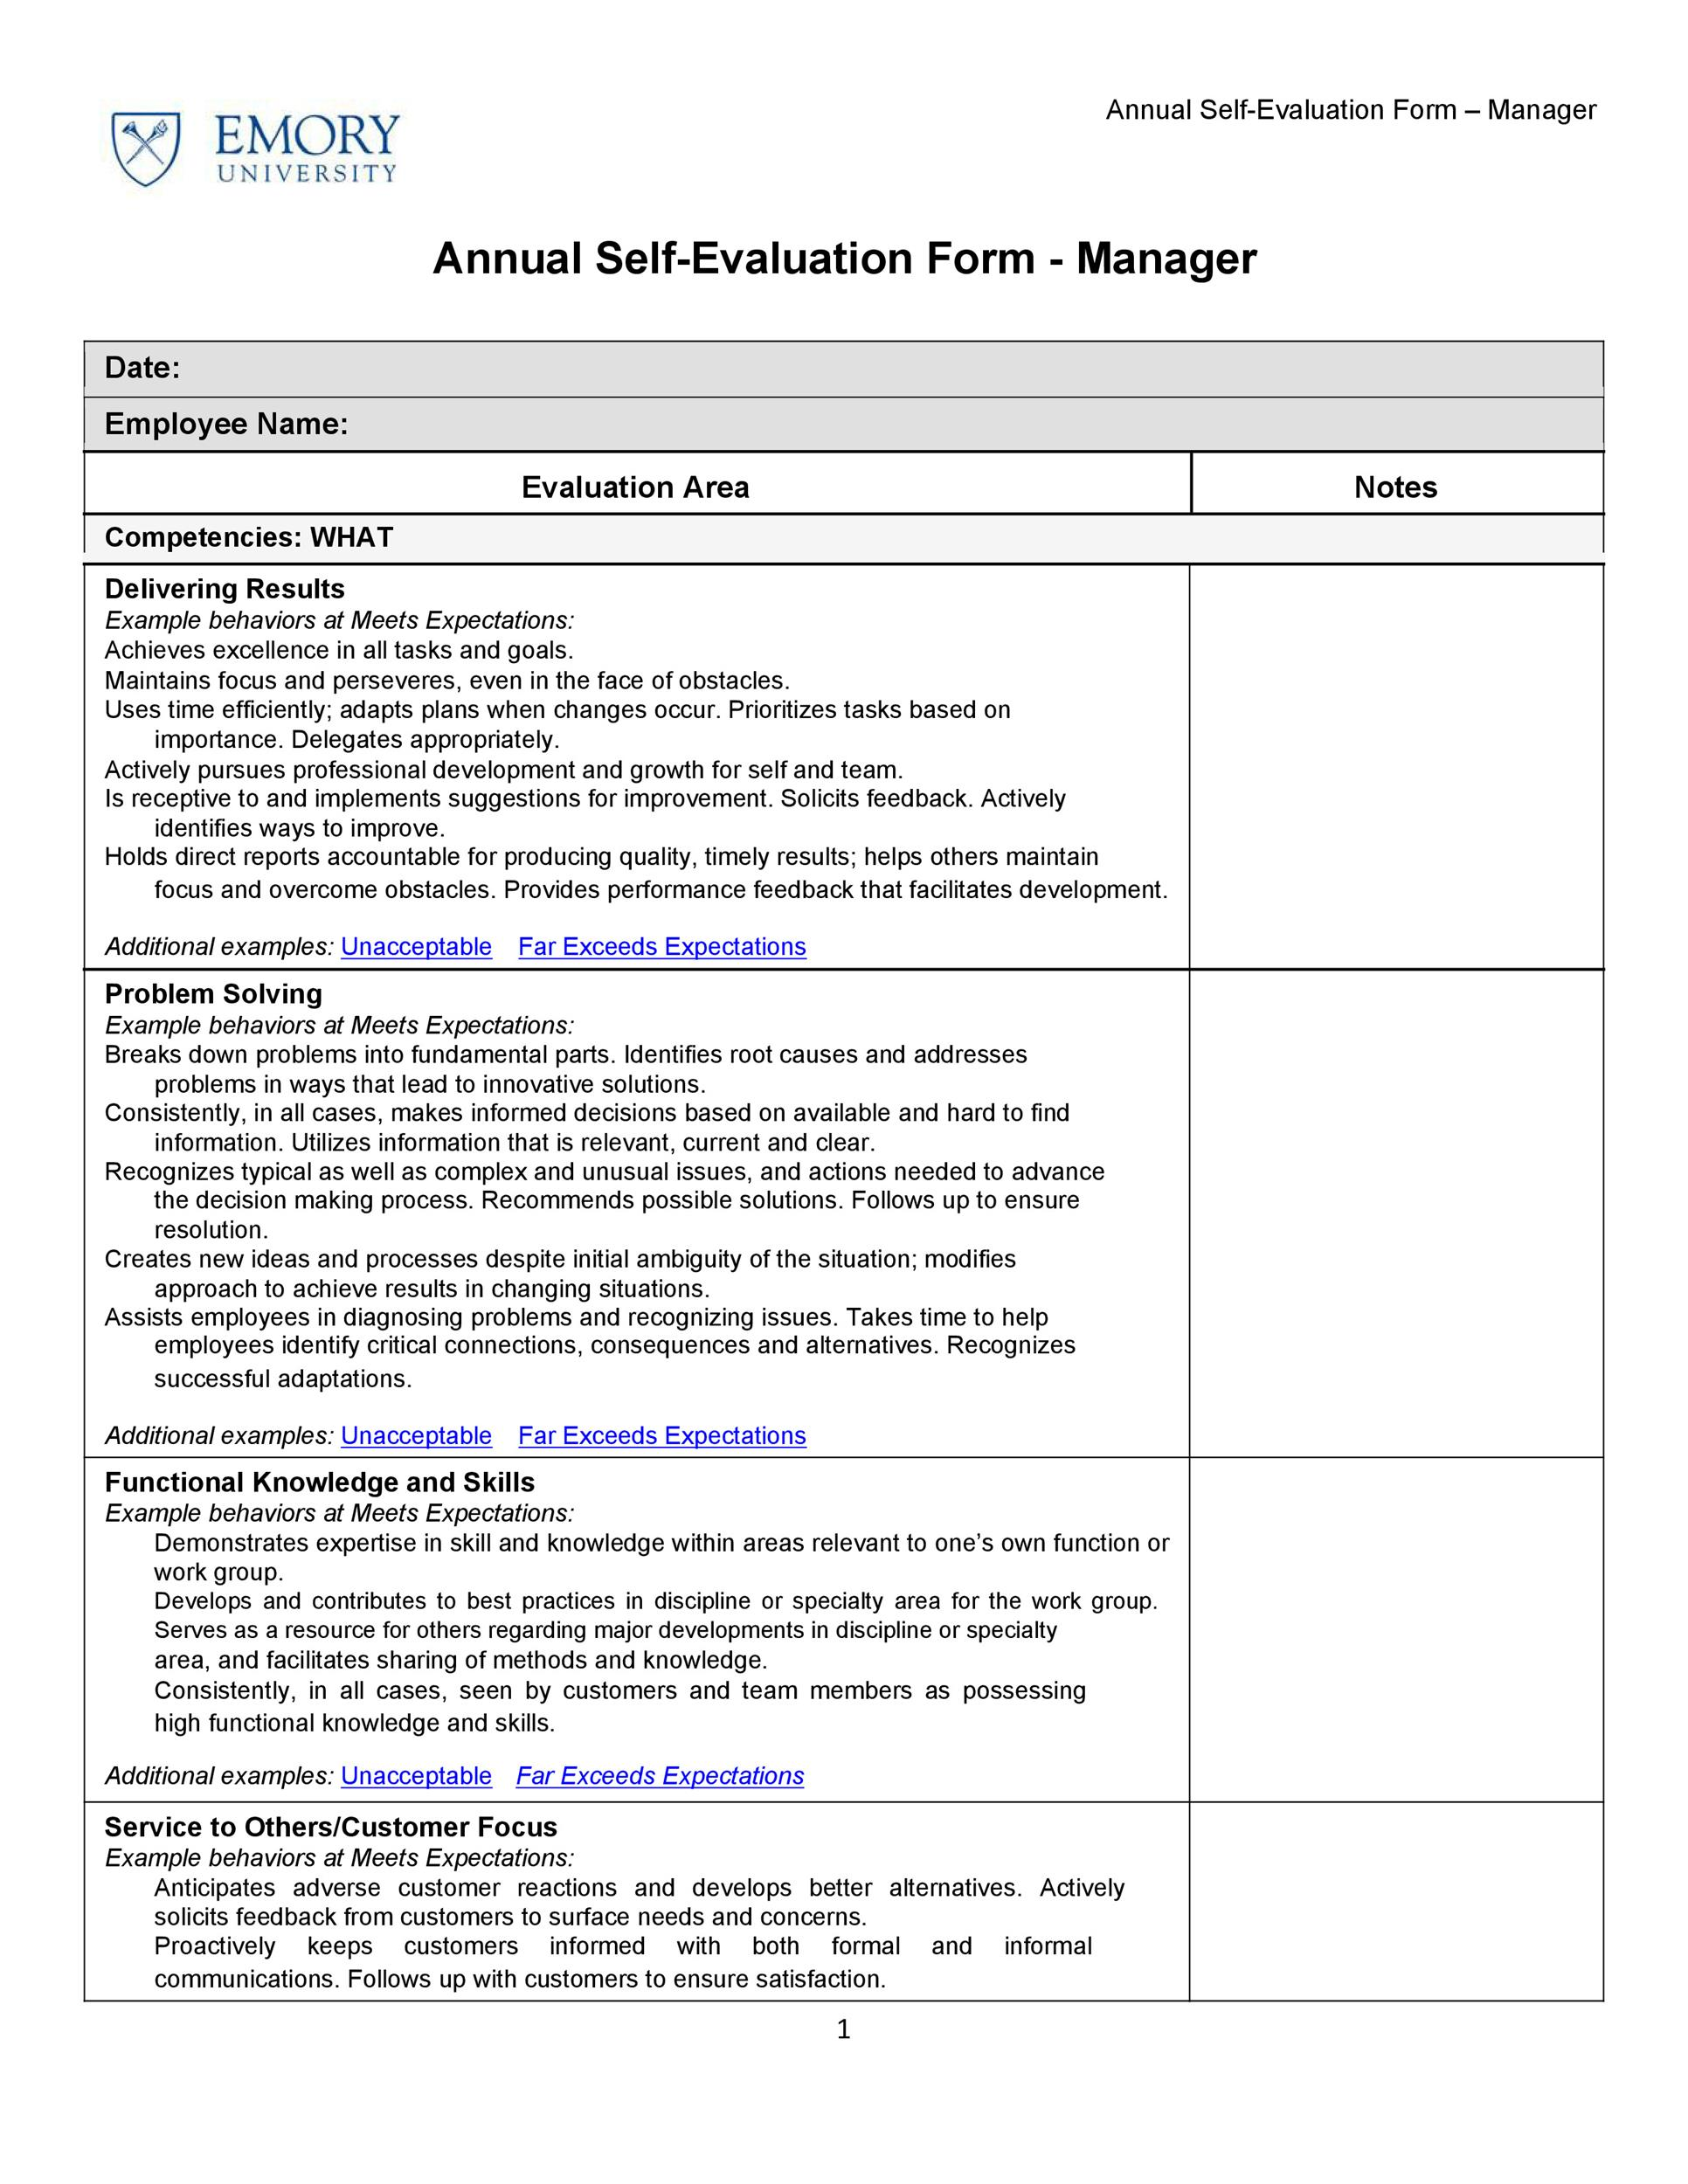 50+ Self Evaluation Examples, Forms  Questions - Template Lab - Self Evaluation